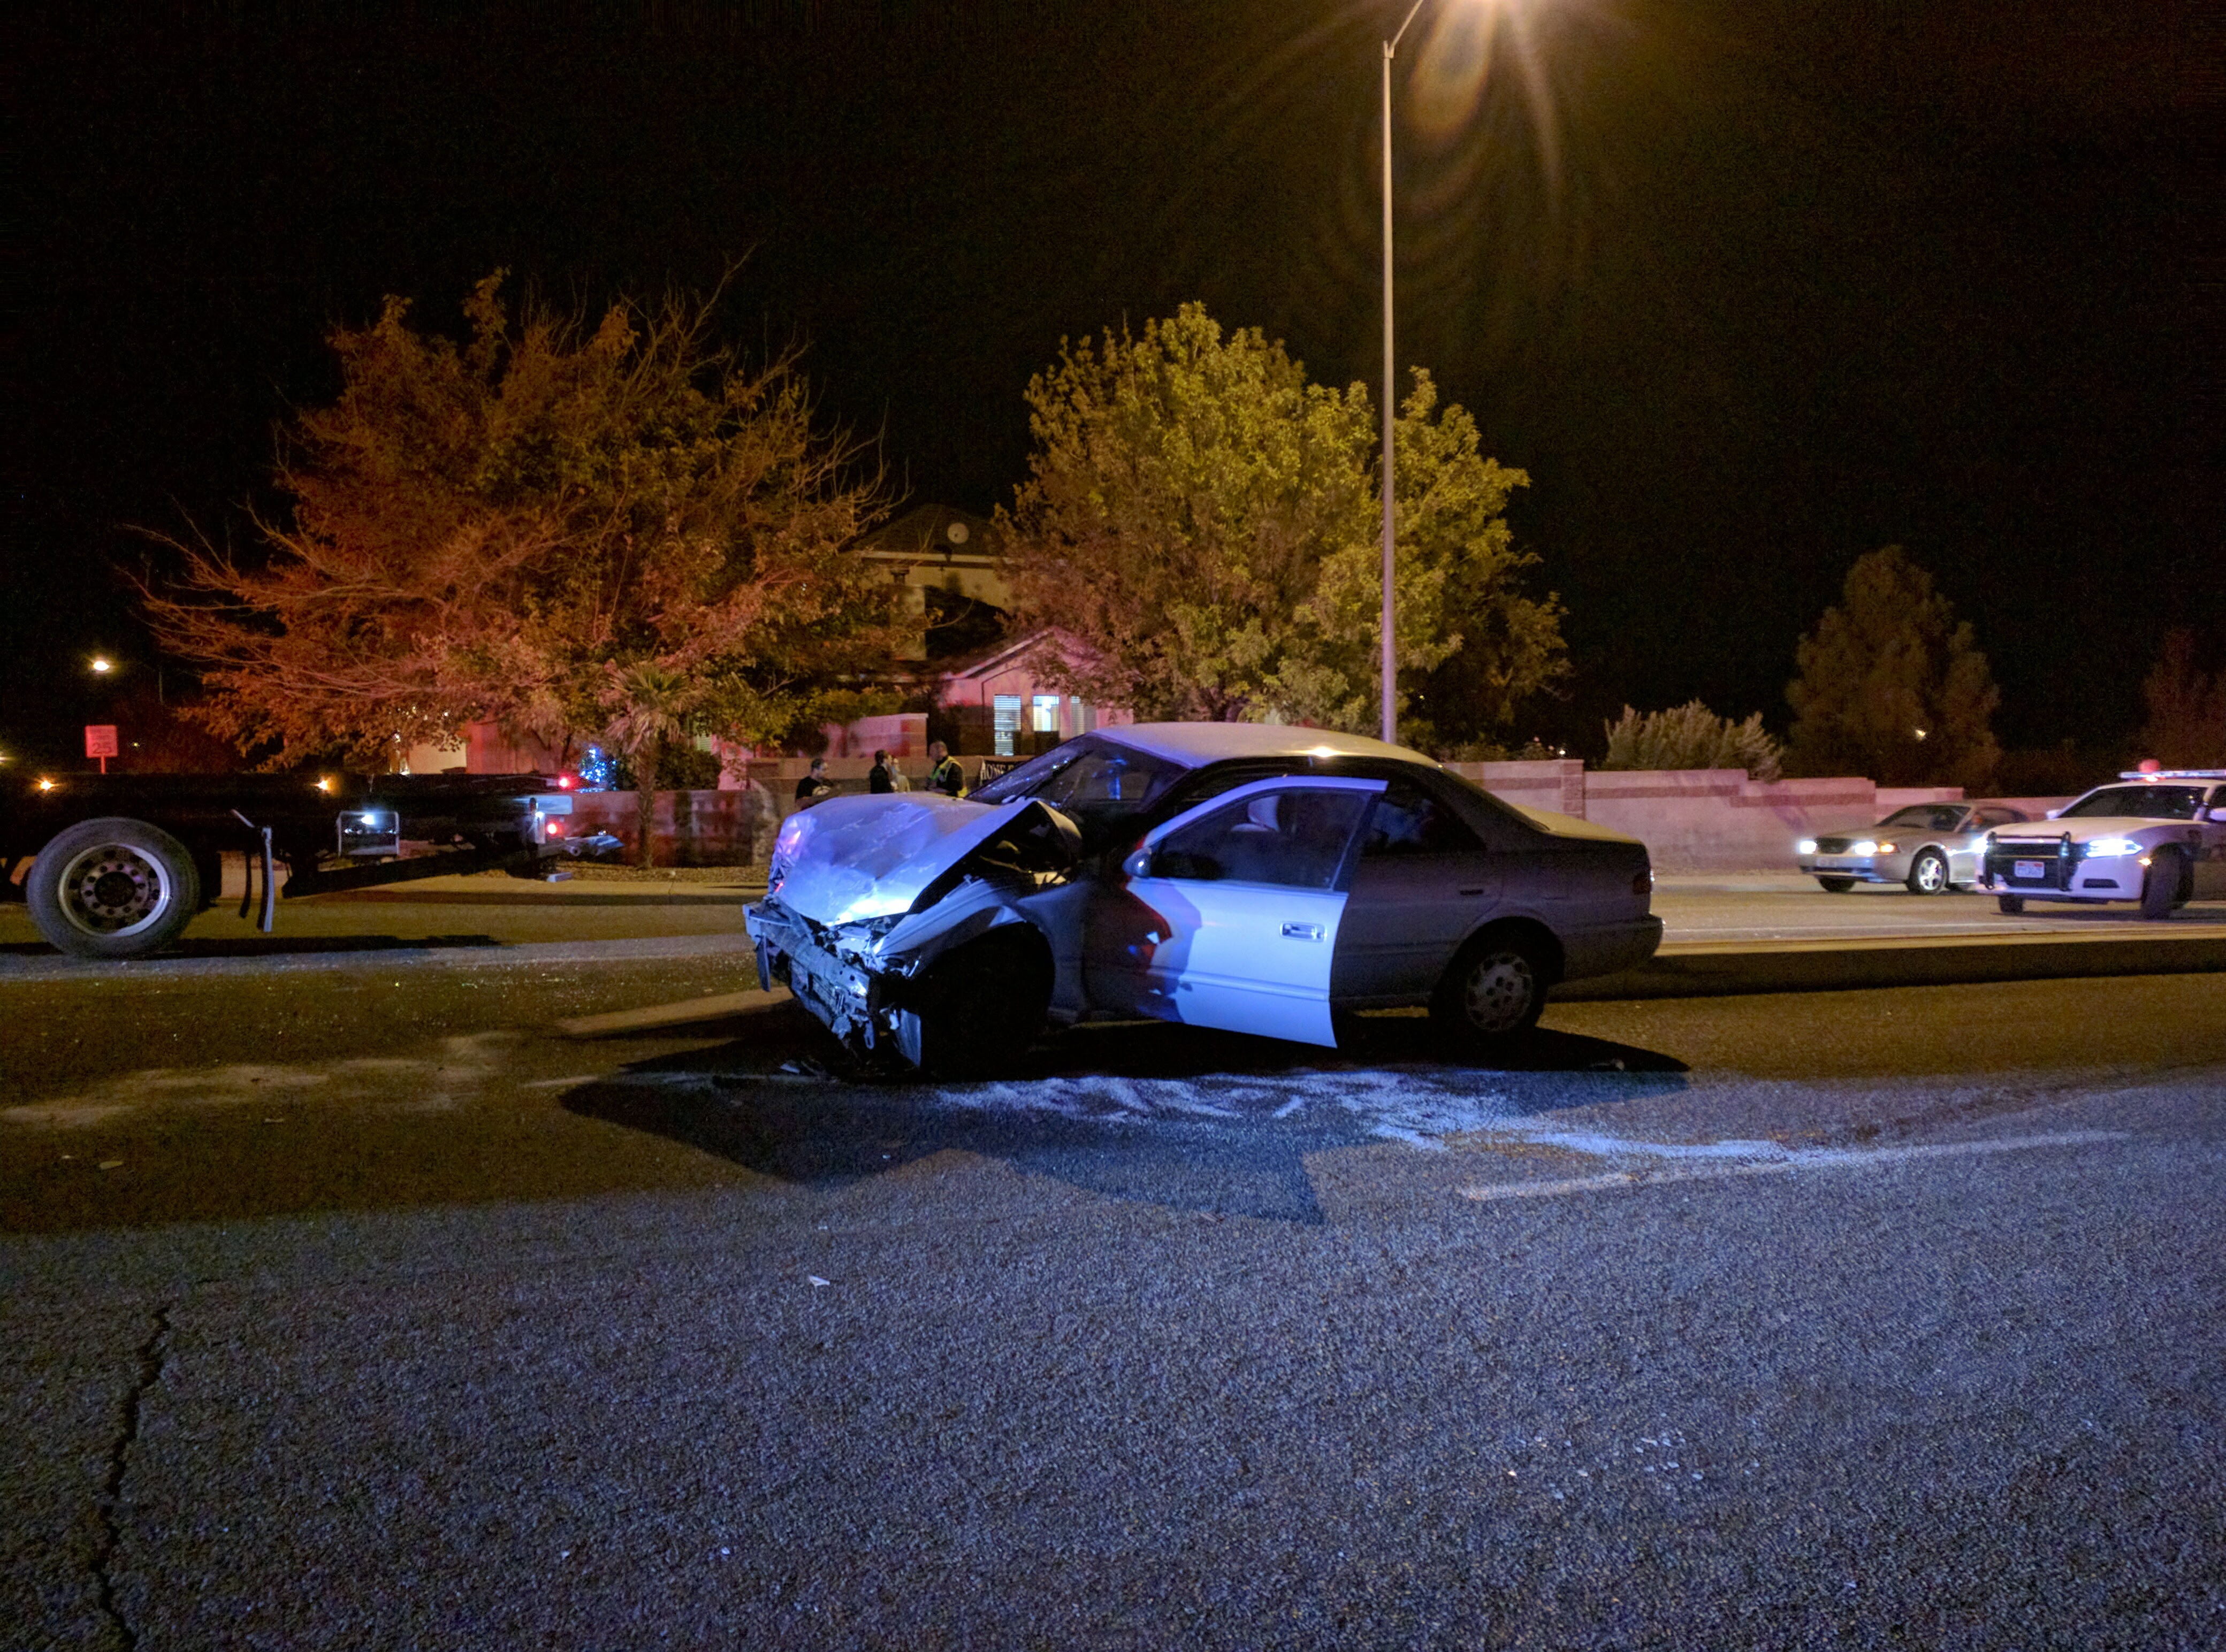 A Toyota Camry is heavily damaged in a collision resulting from a failure to stop at a stop sign, St. George, Utah, Dec. 11, 2016   Photo by Joseph Witham, St. George News